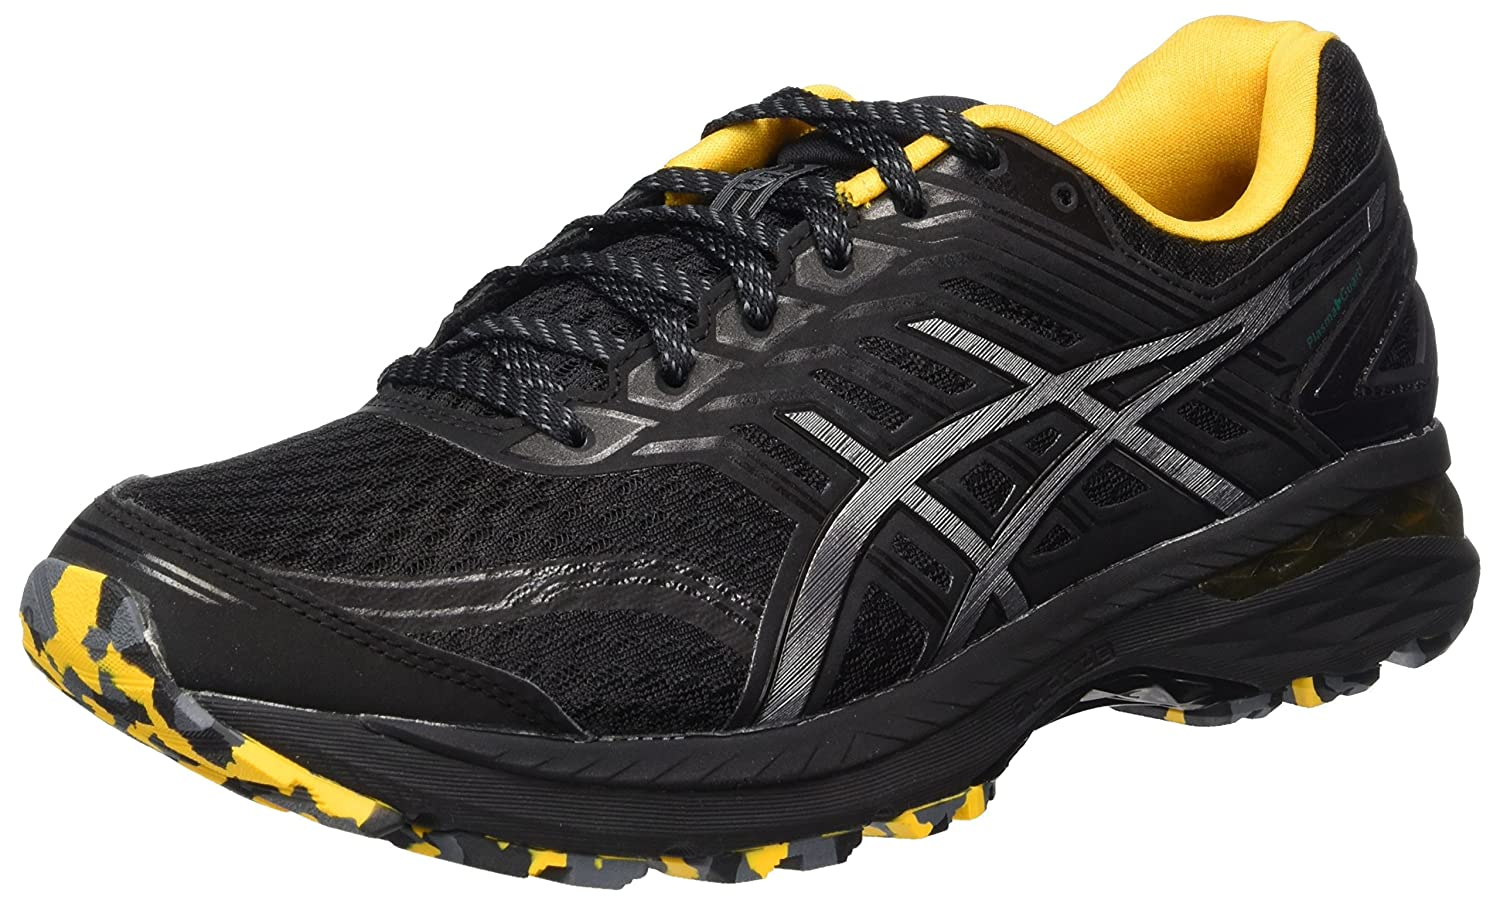 Trail Asics 2000 5 Plasmaguard Men's Running Shoes Gt K1lJTcF